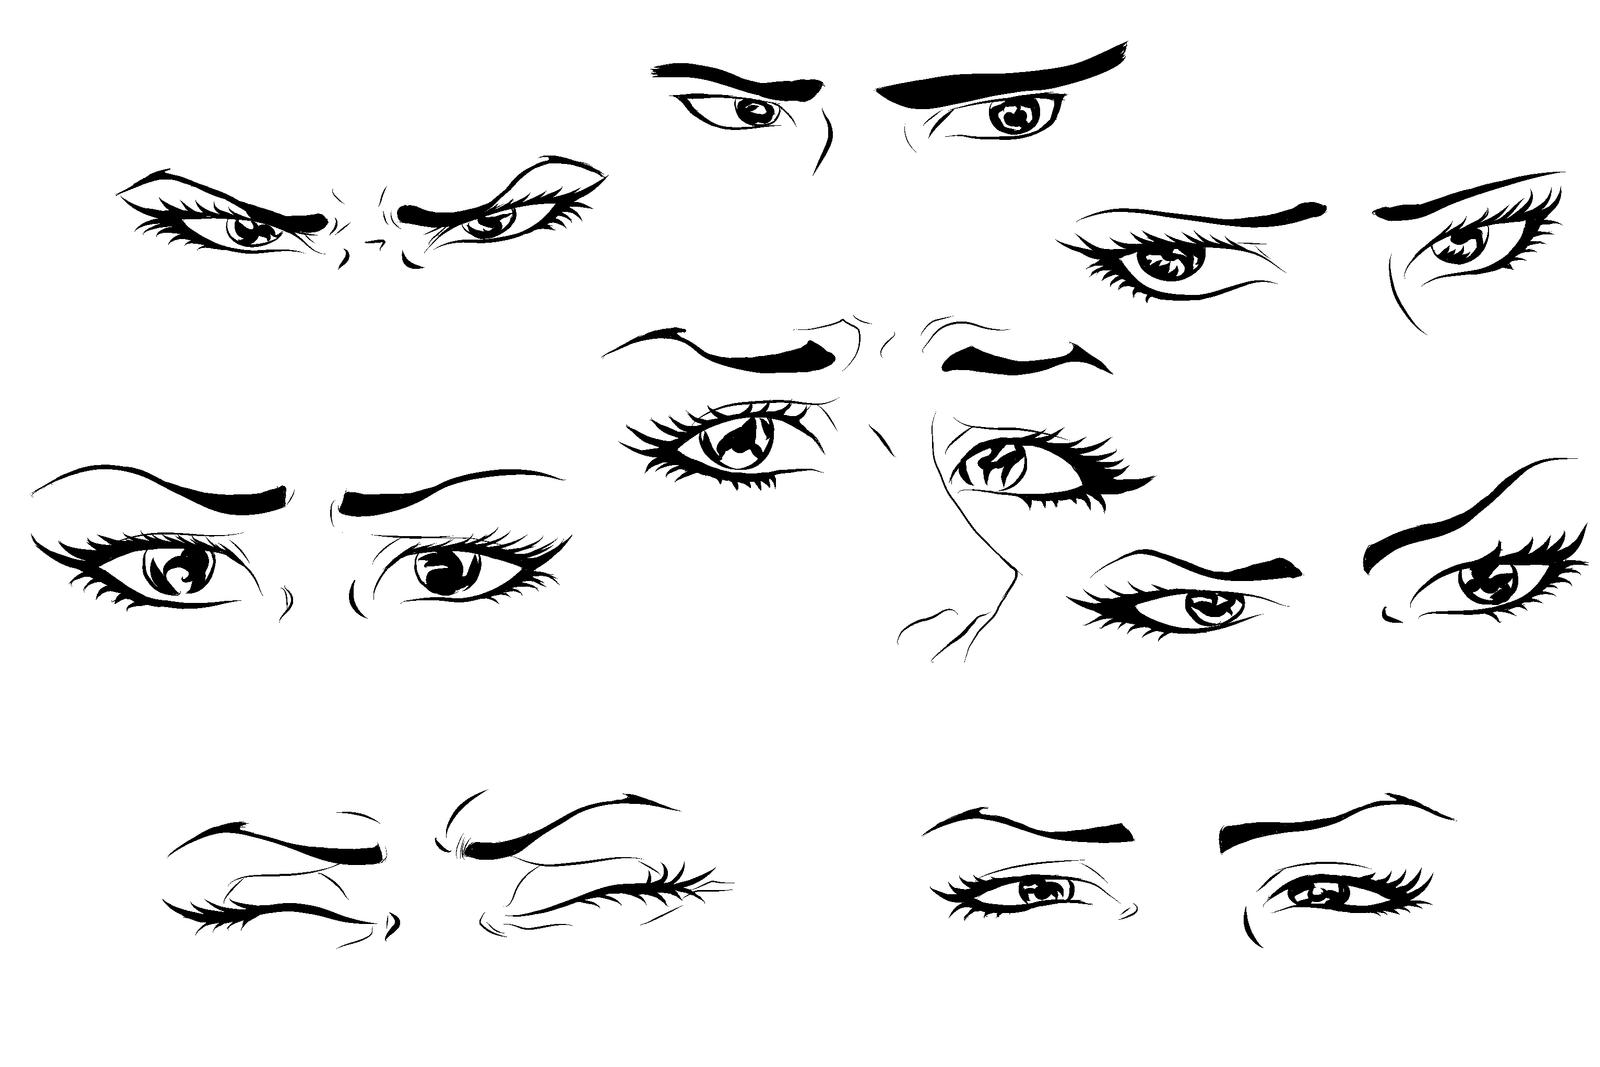 Anime Eyes By Skellymonpierre Anime Eyes By Skellymonpierre How To Draw  Anime Male Eyes Step 4